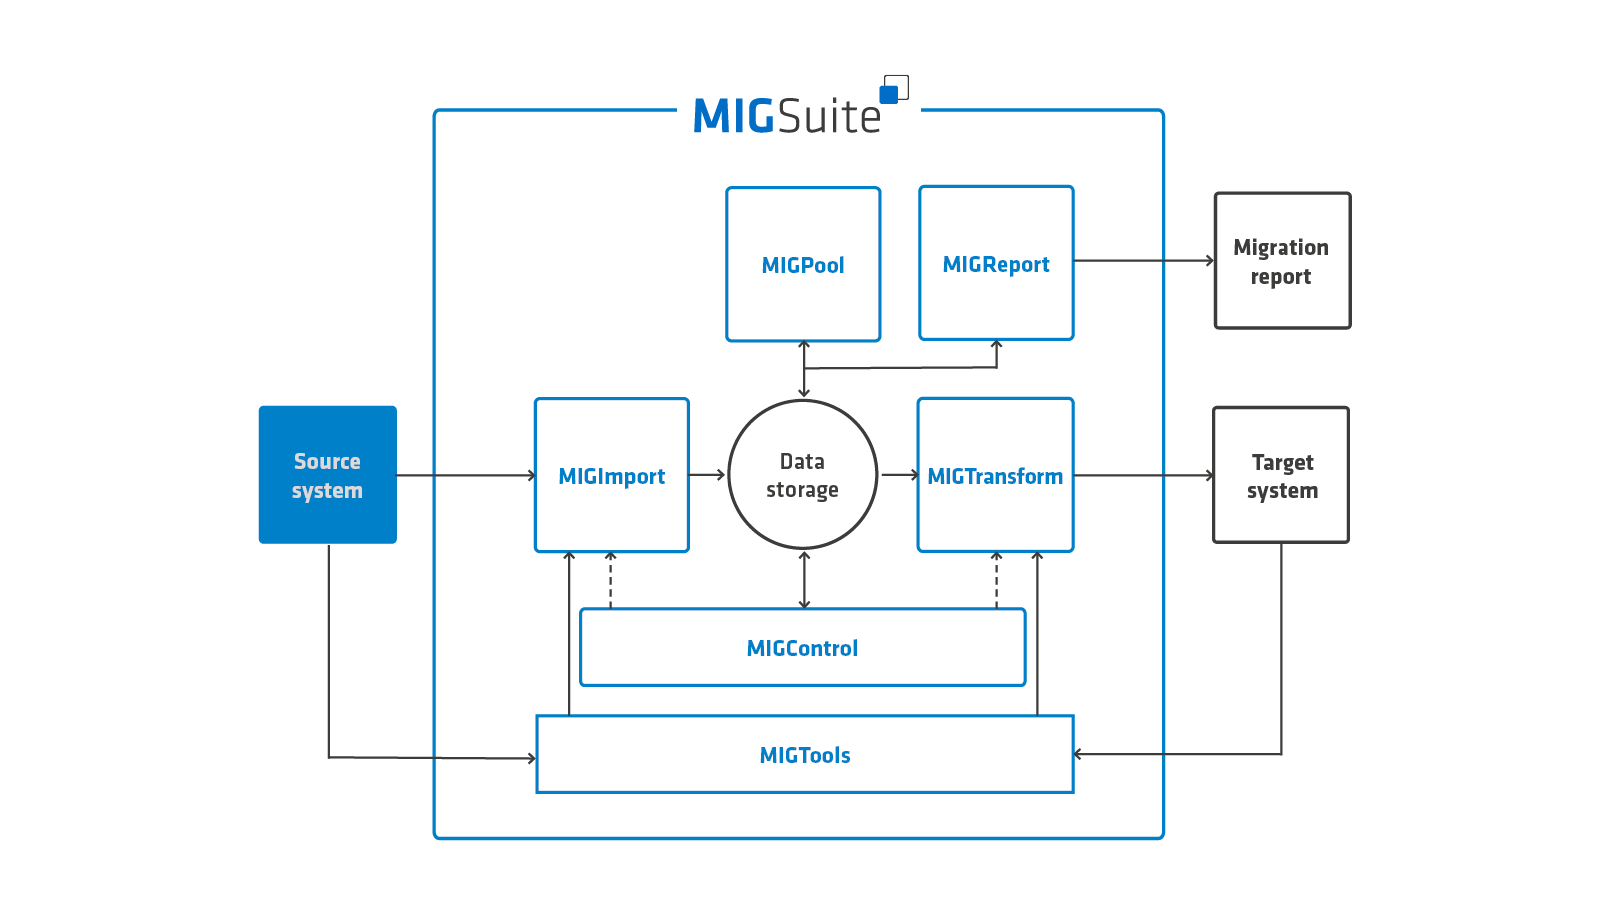 MIGSuite migration process Source system to Target system